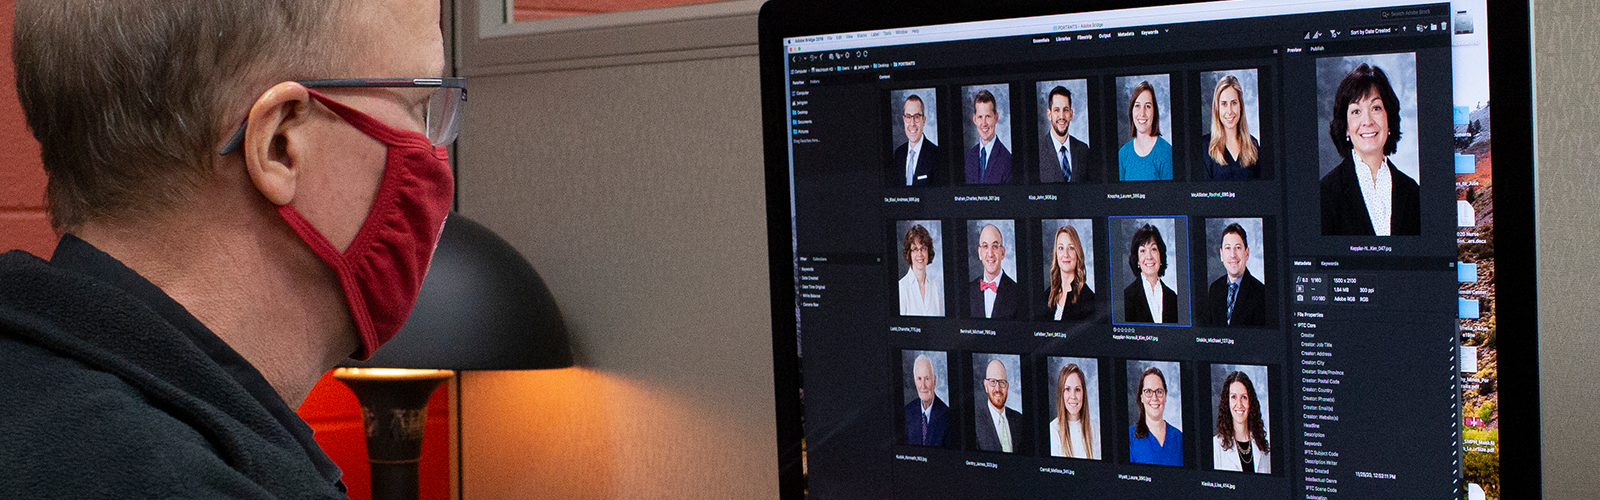 John Wingren at work in Media Solutions office Rm 1373, reviewign a recent Portraits photo shoot